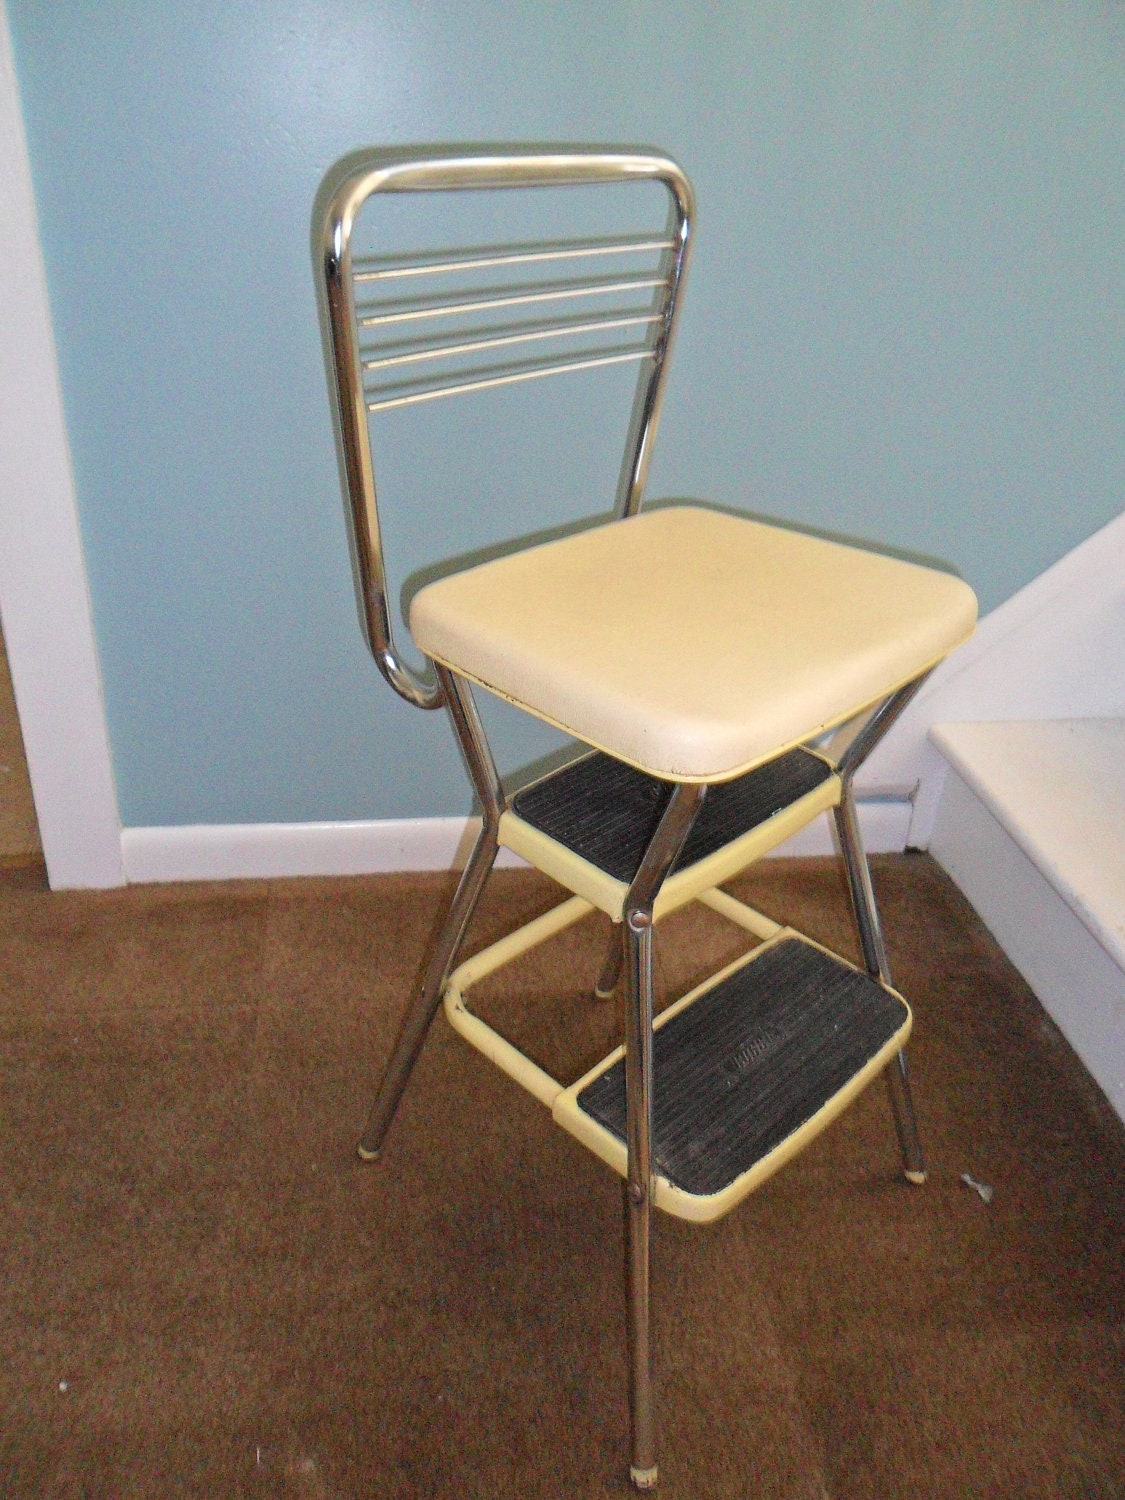 vintage cosco yellow kitchen step stool chair with flip up